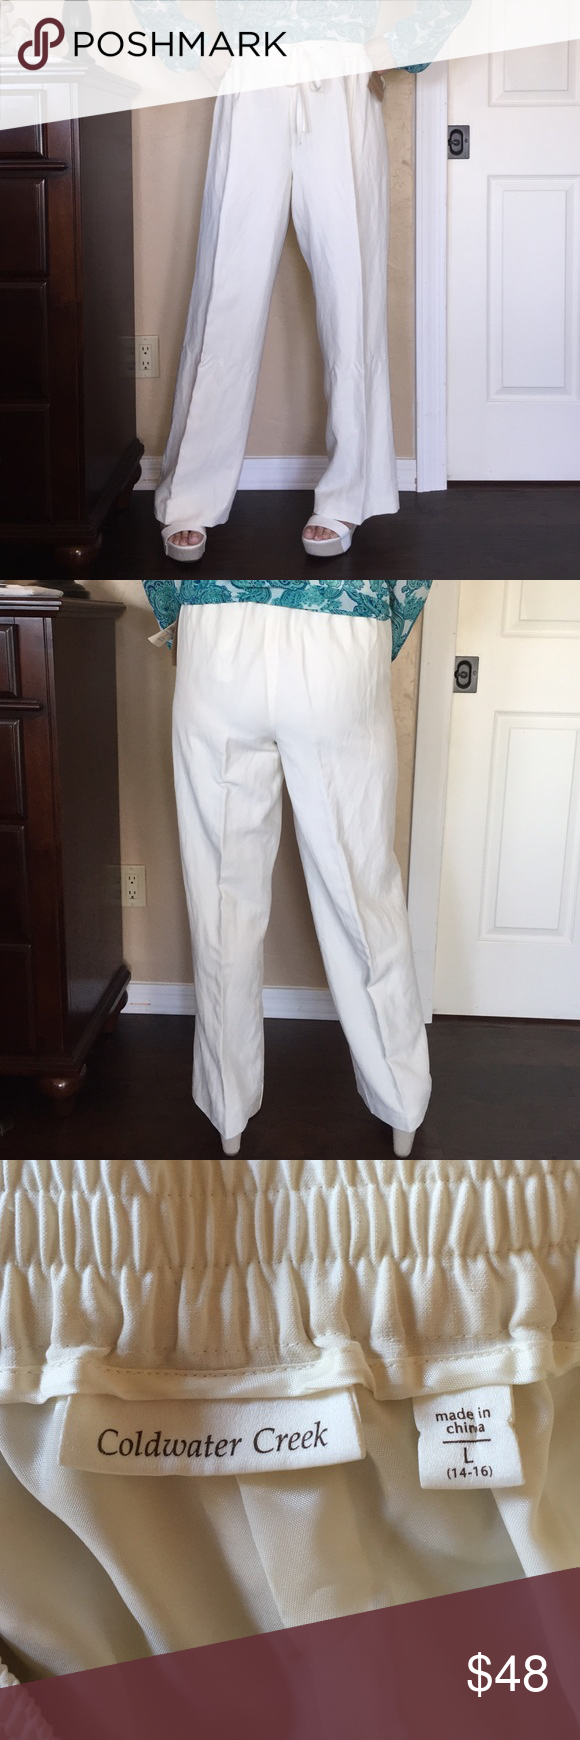 """NWT ColdWater Creek Pull-On Silk & Linen Pants Gorgeous pants! Never worn and new with tags. Size large (14-16) from Coldwater Creek. Elastic waistband and drawstring. Lining is 100% Acetate and the shell is 76% silk and 24% Linen. Originally $90. Dry clean only. Tag reads """"Sits just above the waist relaxed slightly through the hips and thighs with invisible comfort waistband and stretch fabric. Silk and linen naturally beautiful, light and easy. The soft drape of silk pairs with the texture…"""